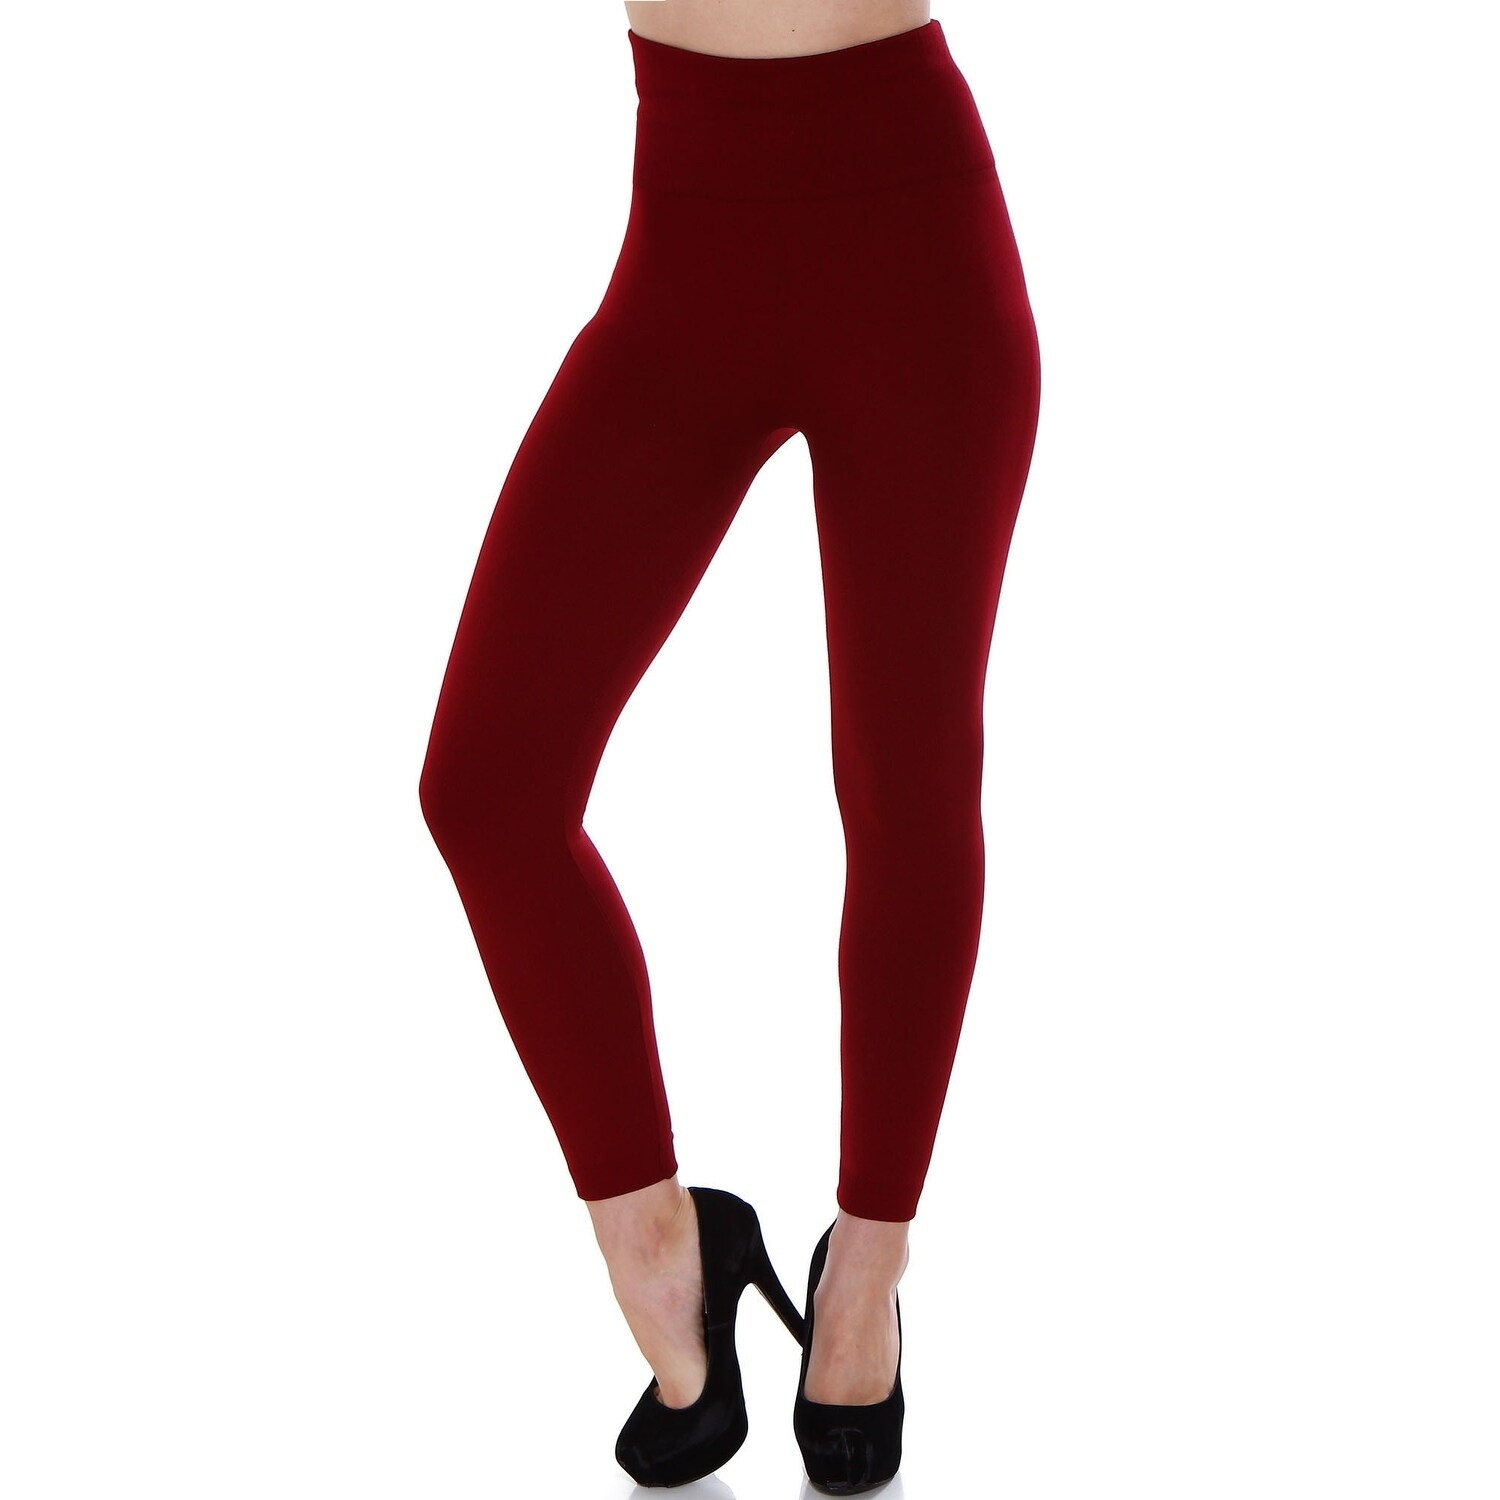 6009990b232831 Shop Women's High Waist Fleece Lined Solid Color Stretchy Leggings -  Assorted Solid Colors - On Sale - Free Shipping On Orders Over $45 -  Overstock - ...